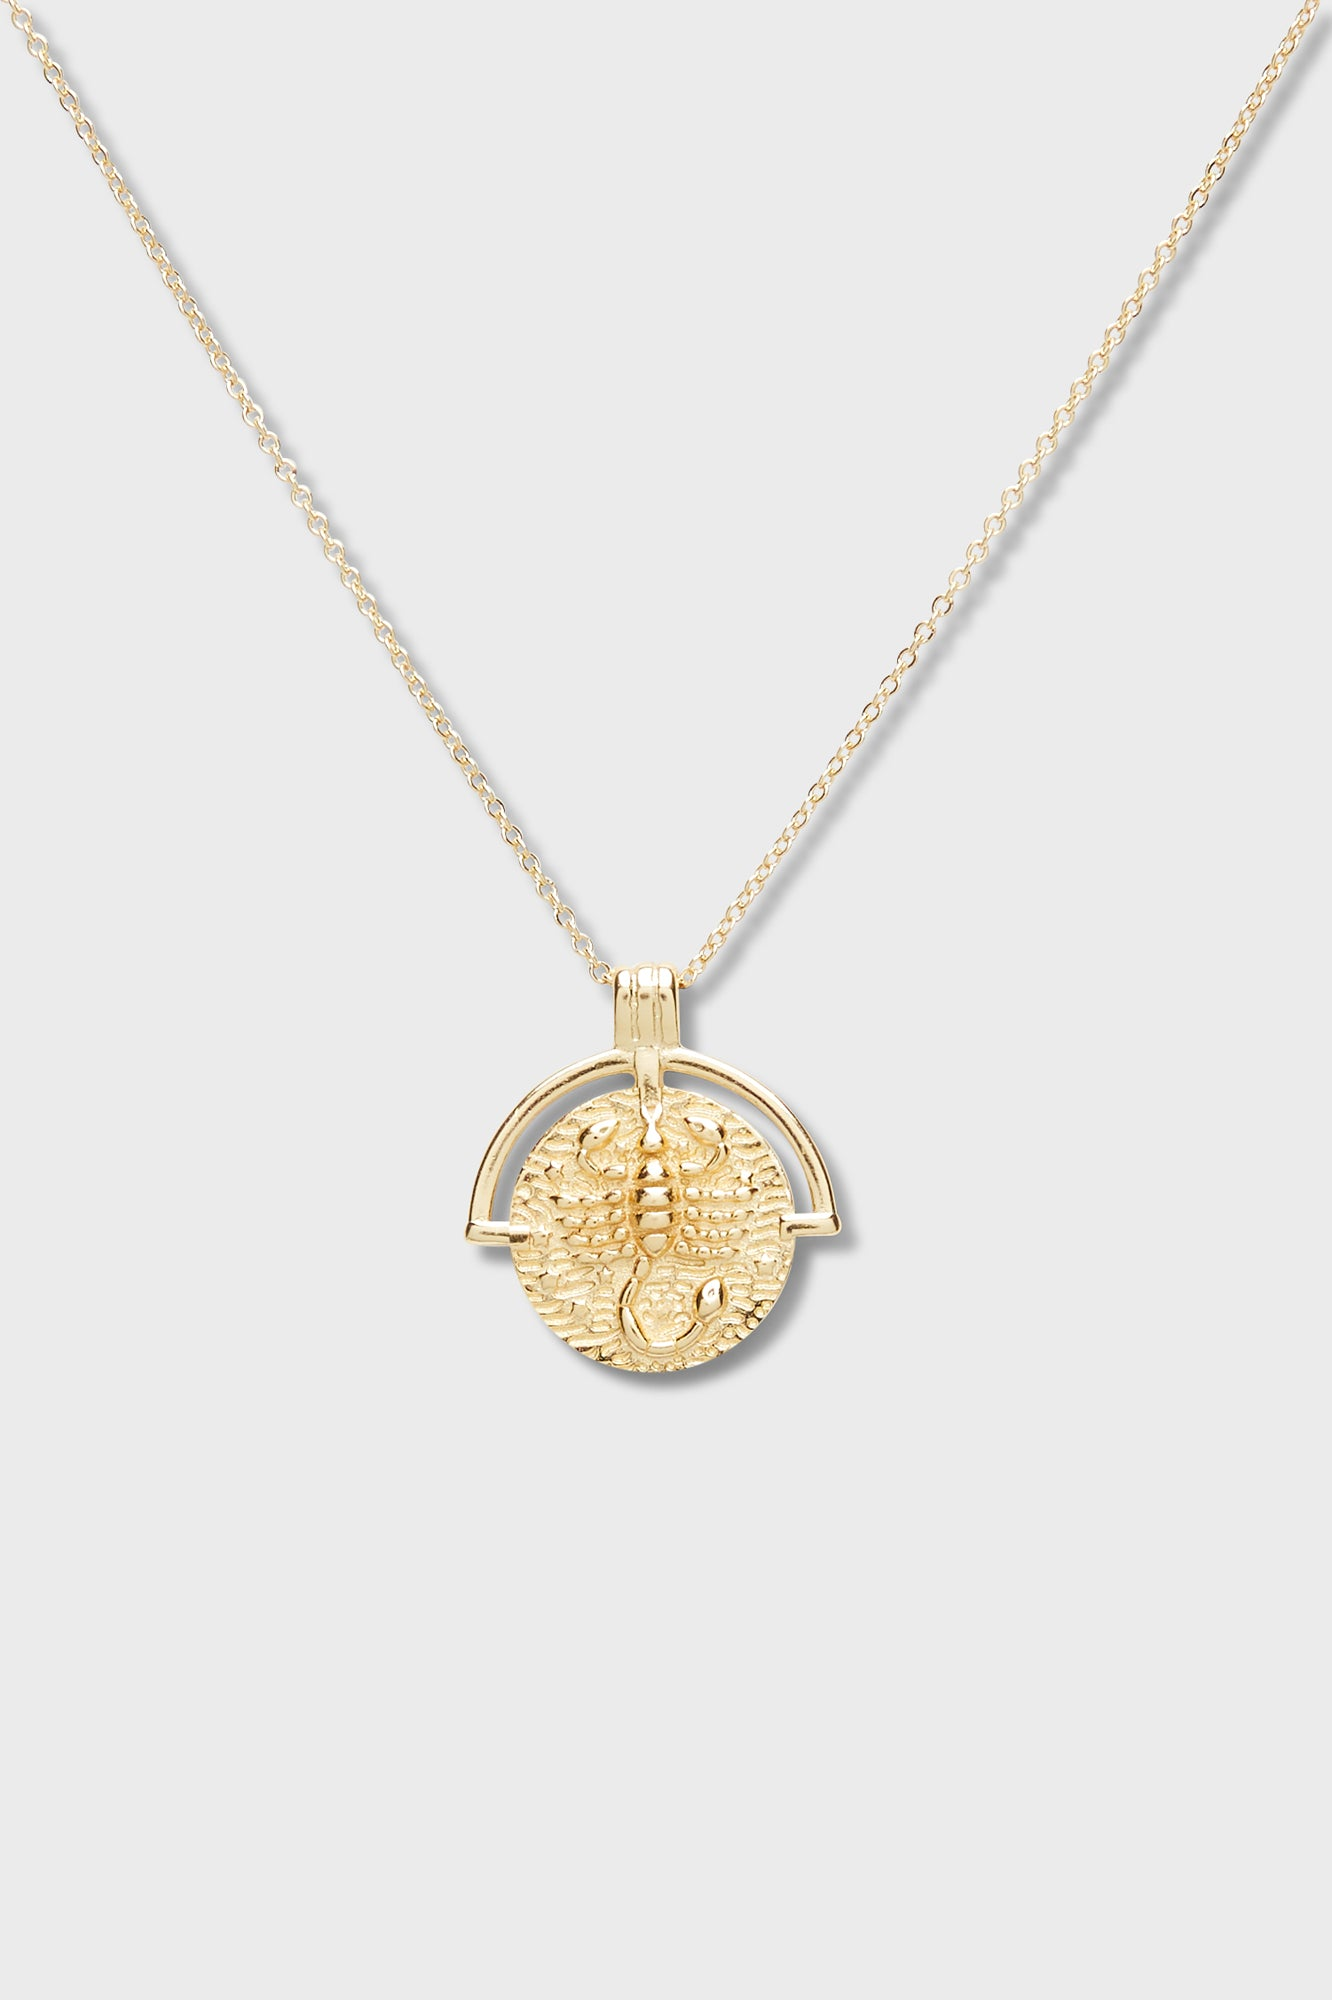 Astrology Necklace - Scorpio